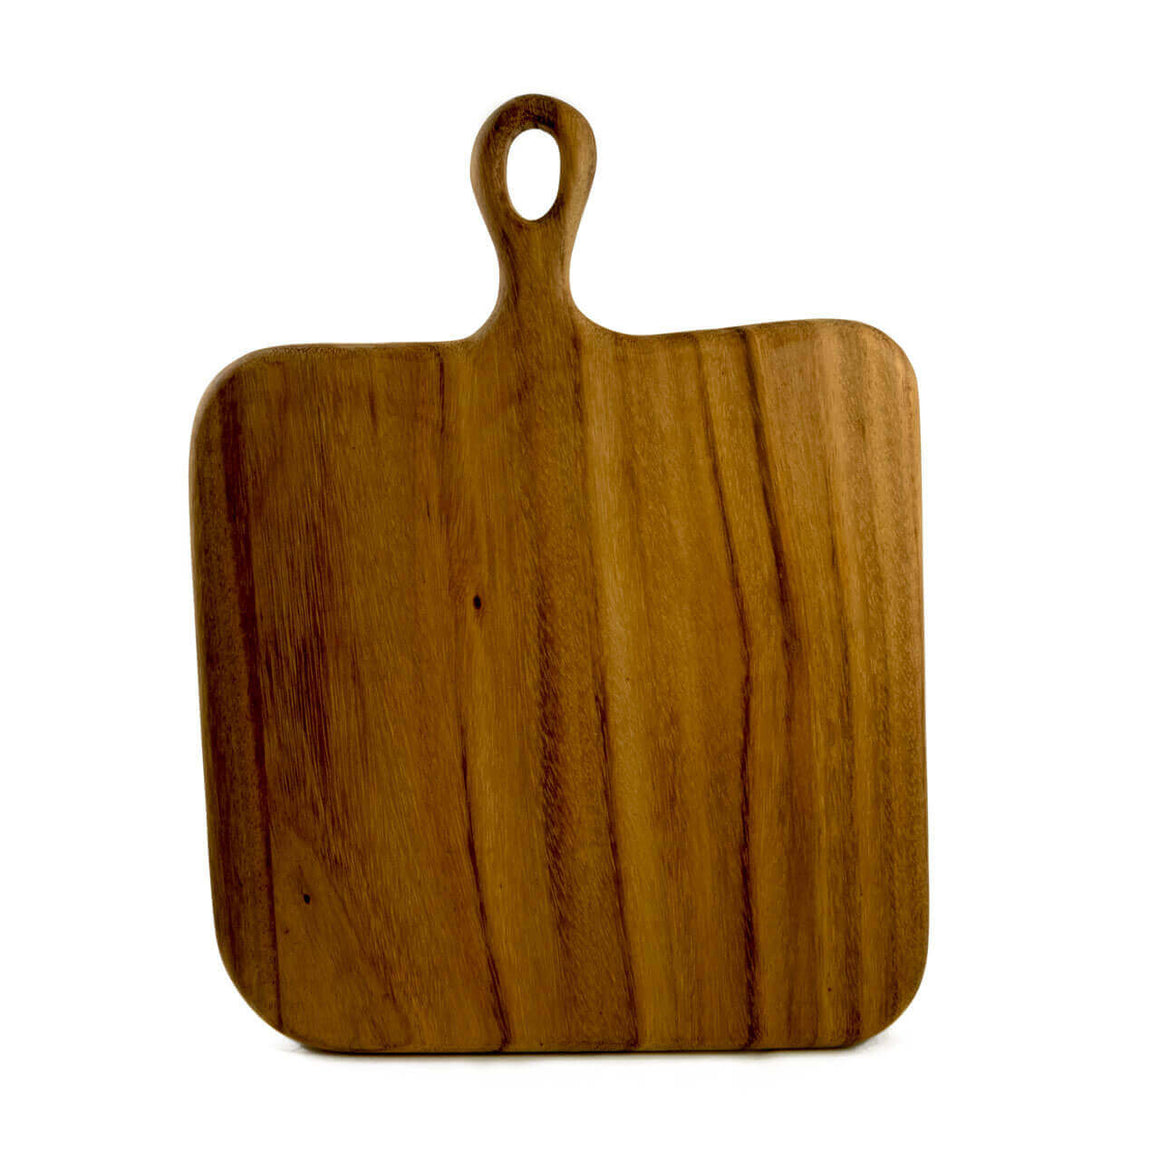 Square Loop Handle Board